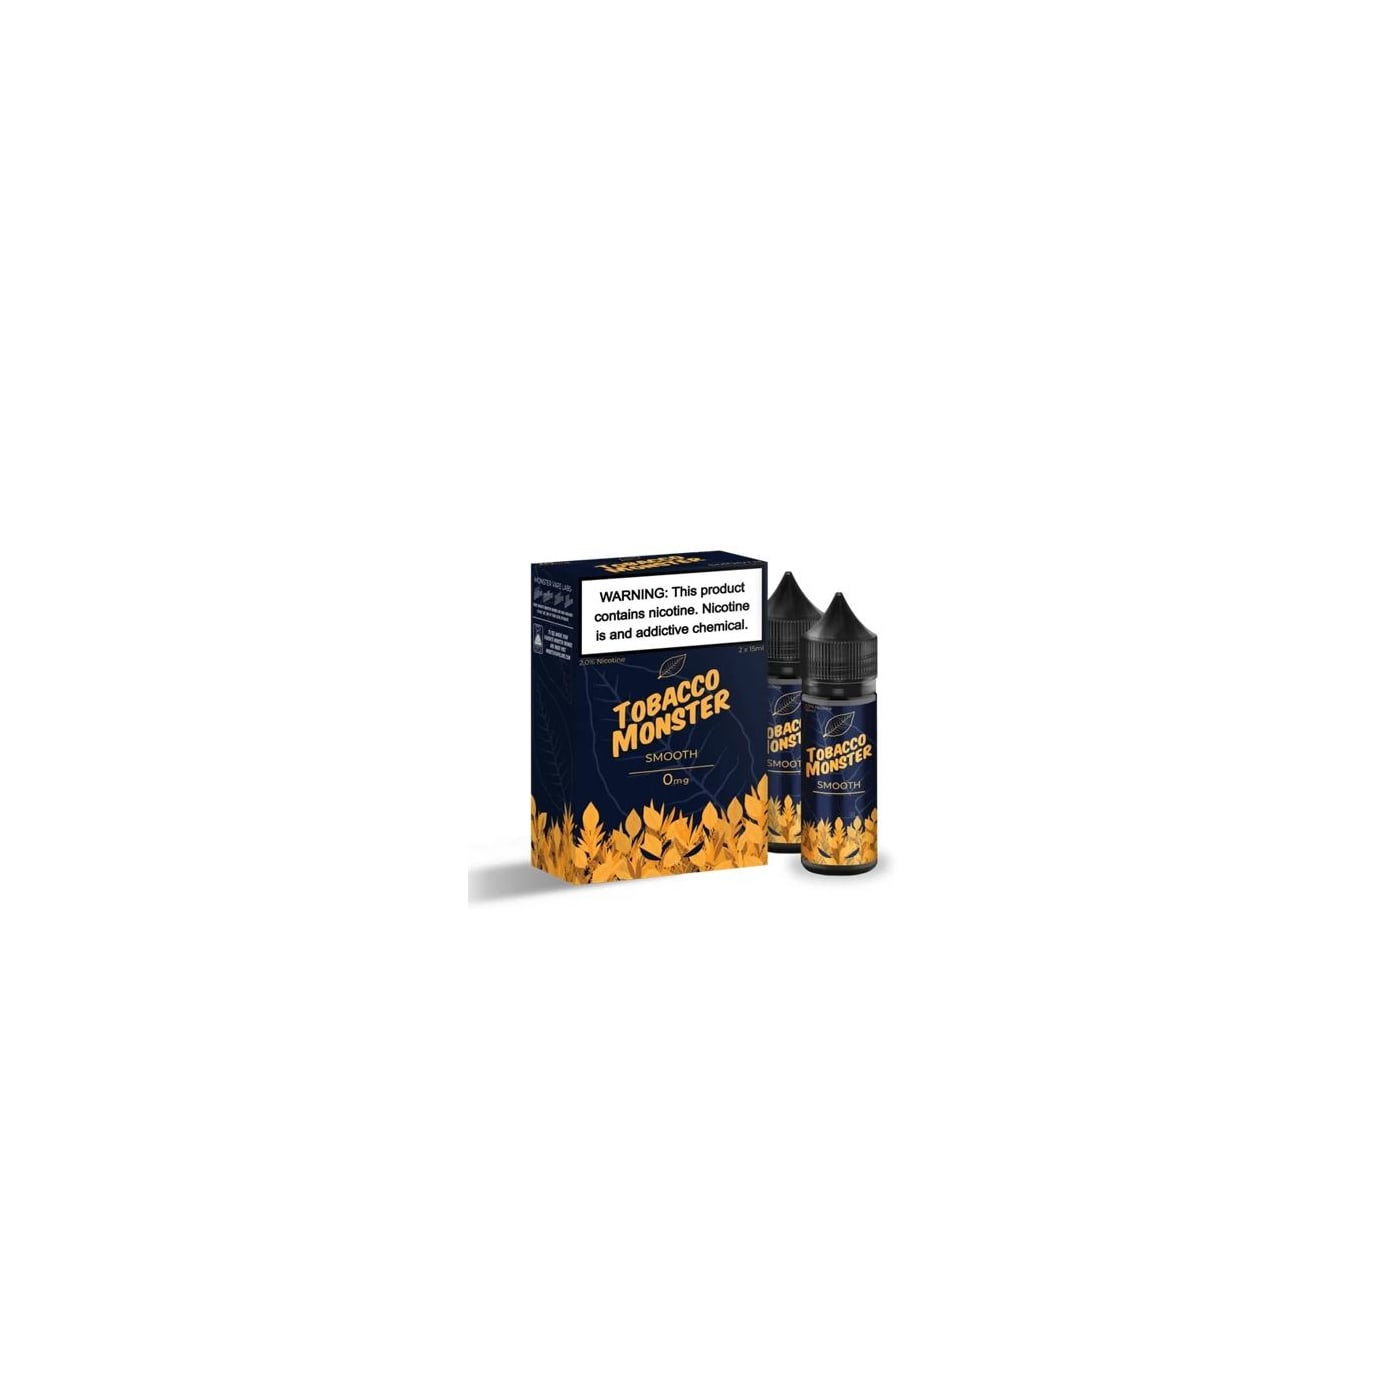 Tobacco Monster Smooth - 2 Pack